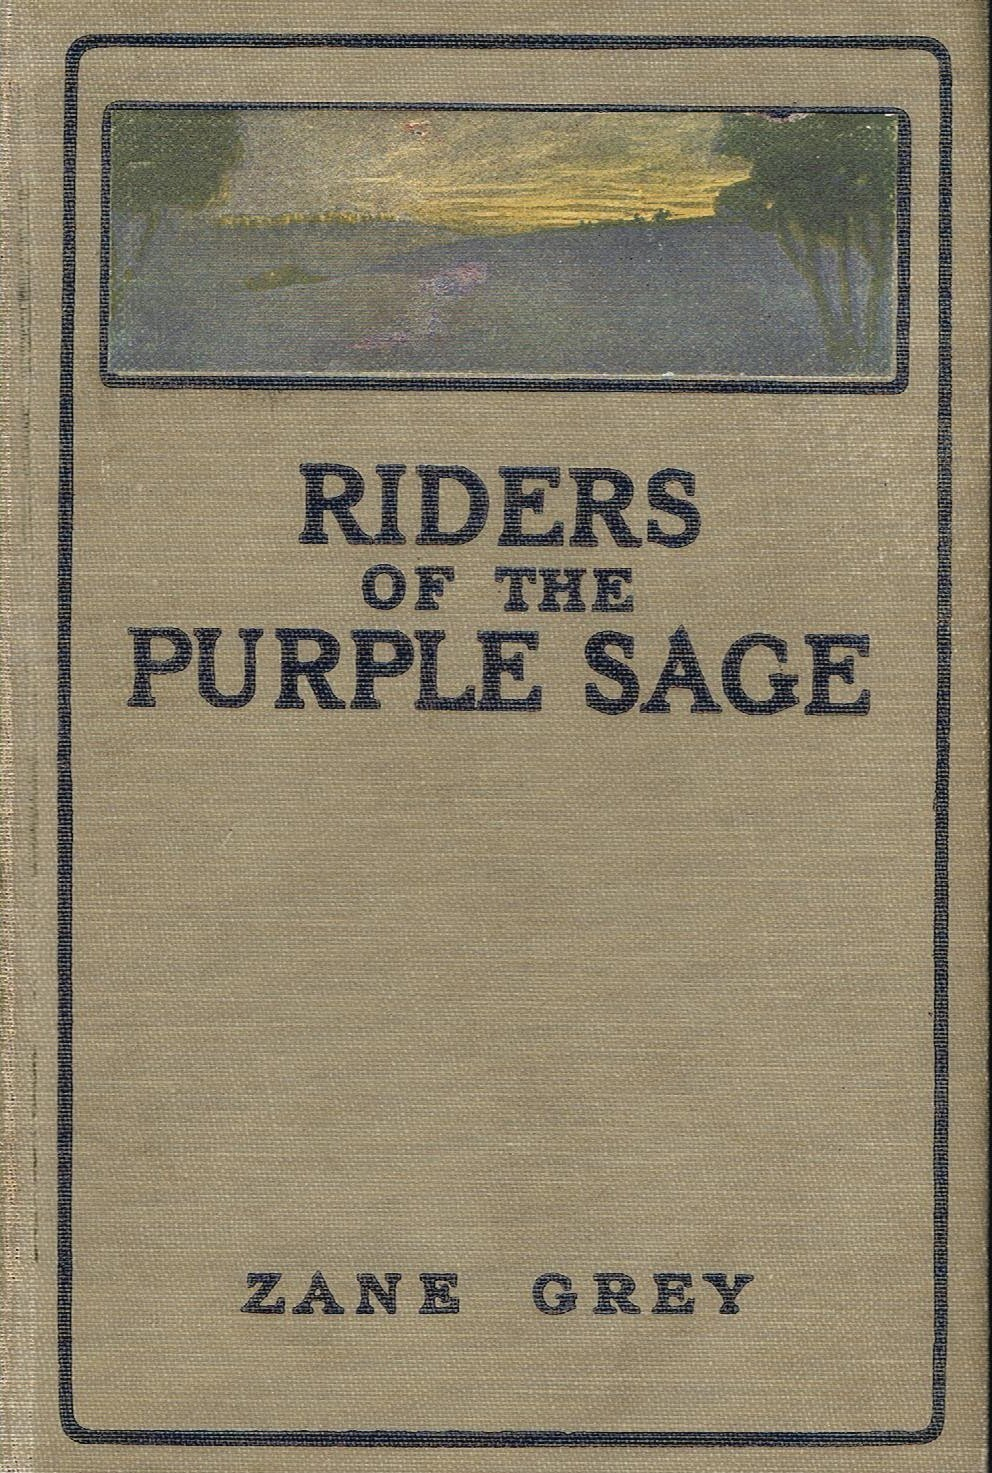 Novel cover of Riders of the Purple Sage by Zane Grey.